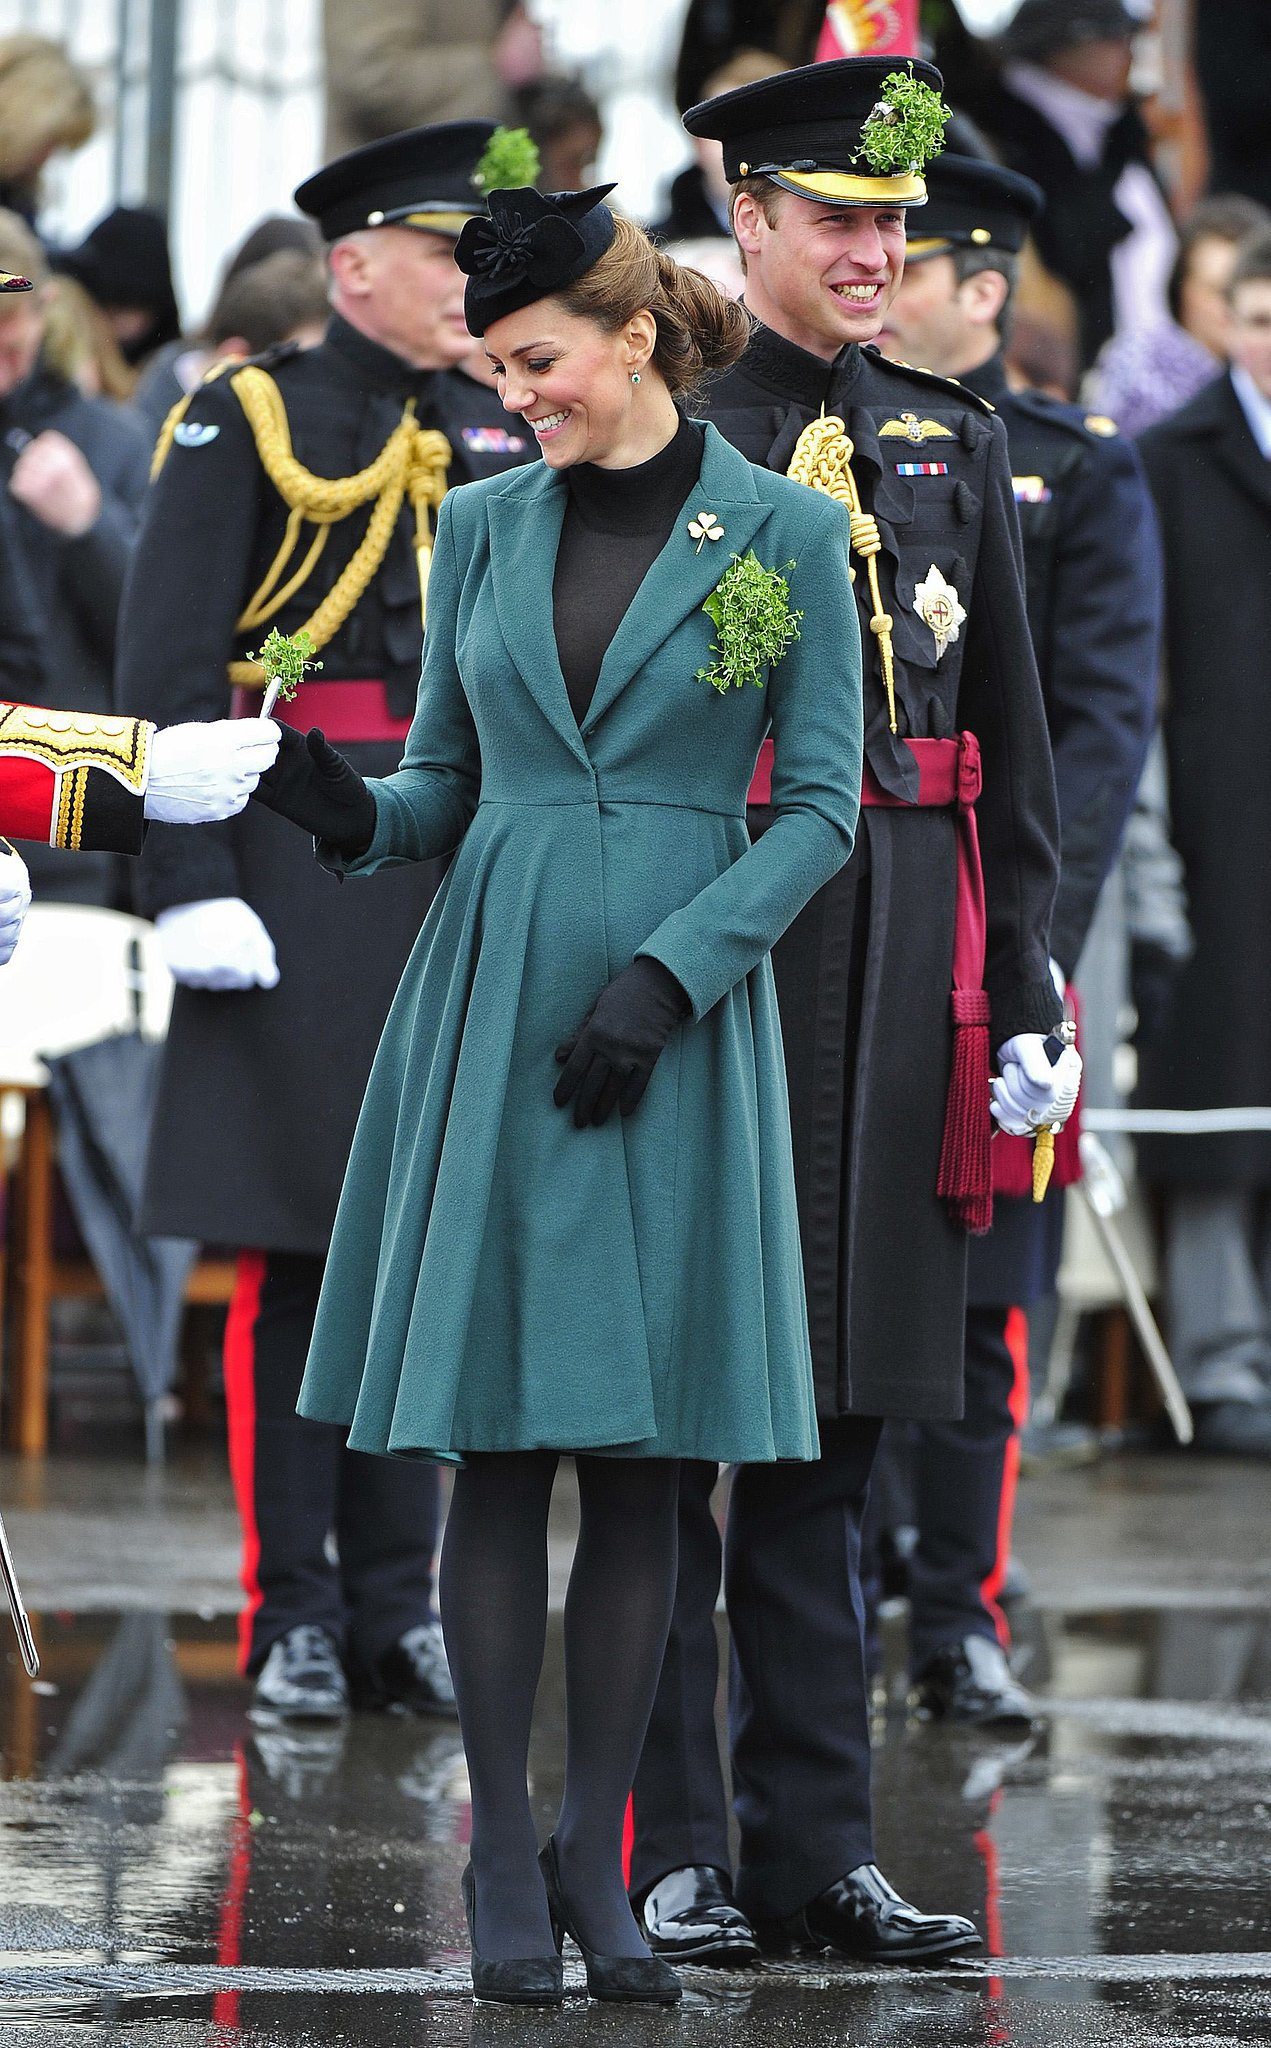 Kate Middleton and Prince William attended a St. Patrick's Day parade in Aldershot in March 2013.